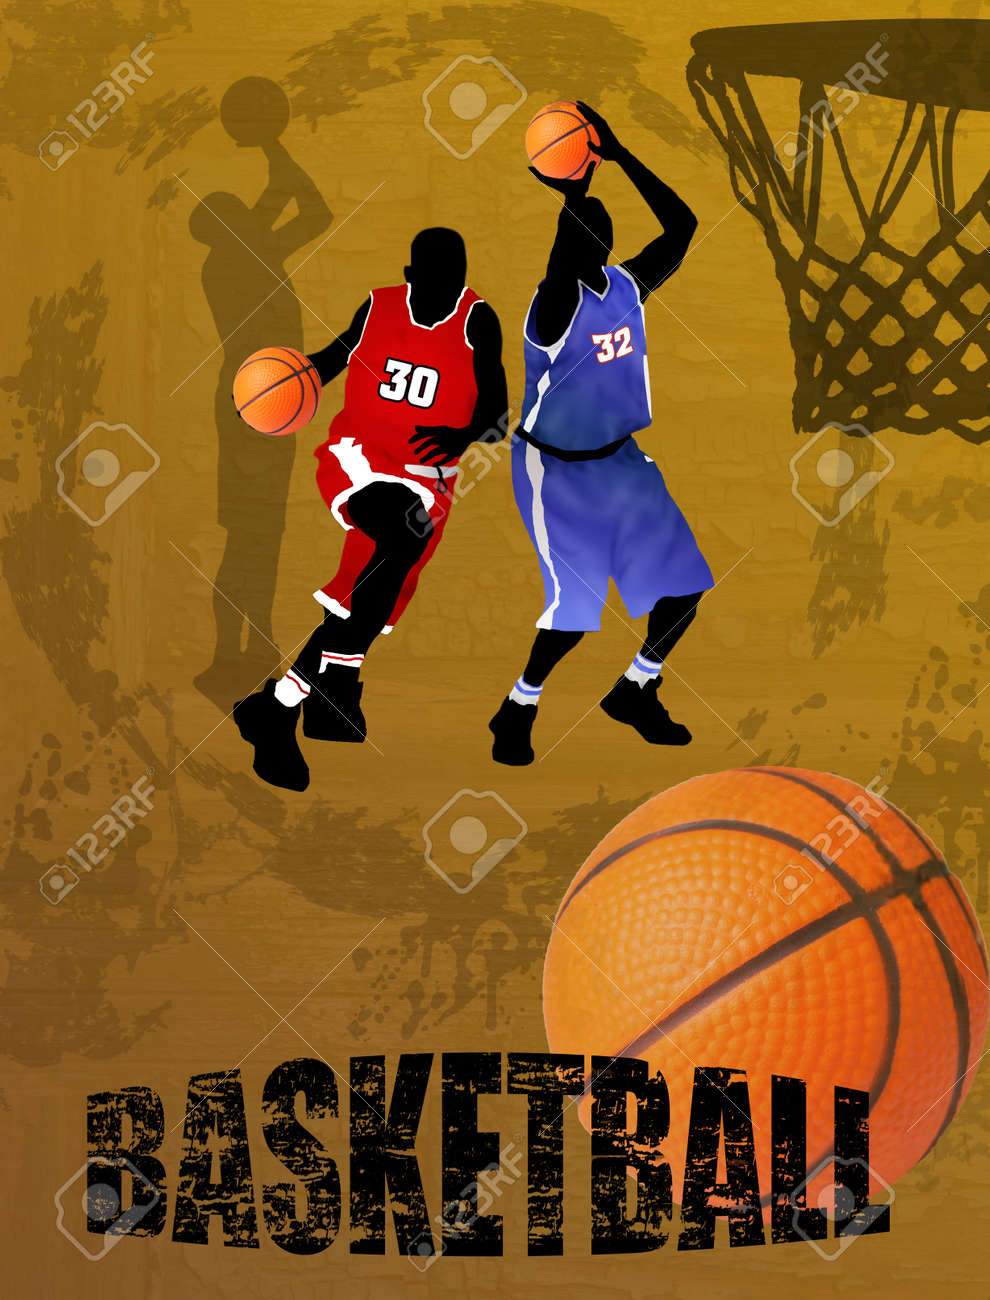 Action players, vector illustration  Basketball team on abstract background Stock Vector - 13862312